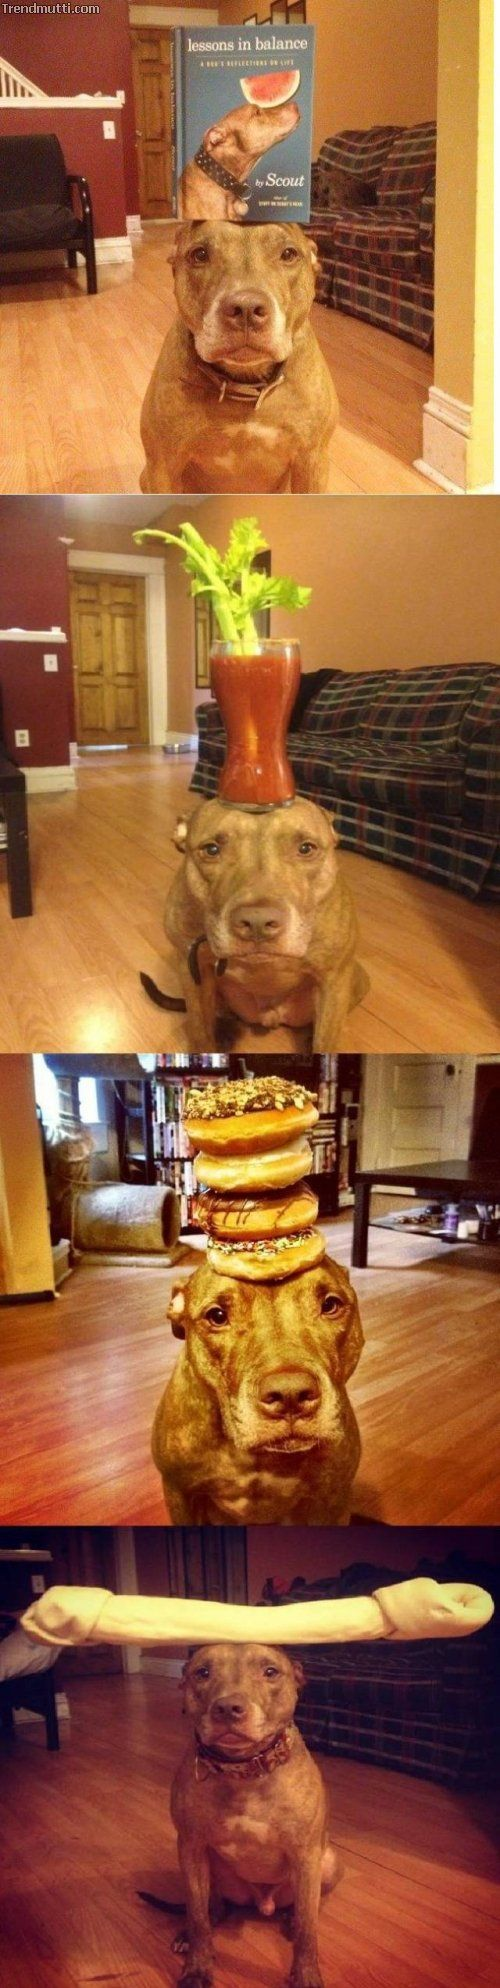 Today funny pictures (08:28:46 PM, Thursday 05, January 2017 PST) – 19 pics #funnydoglaughter